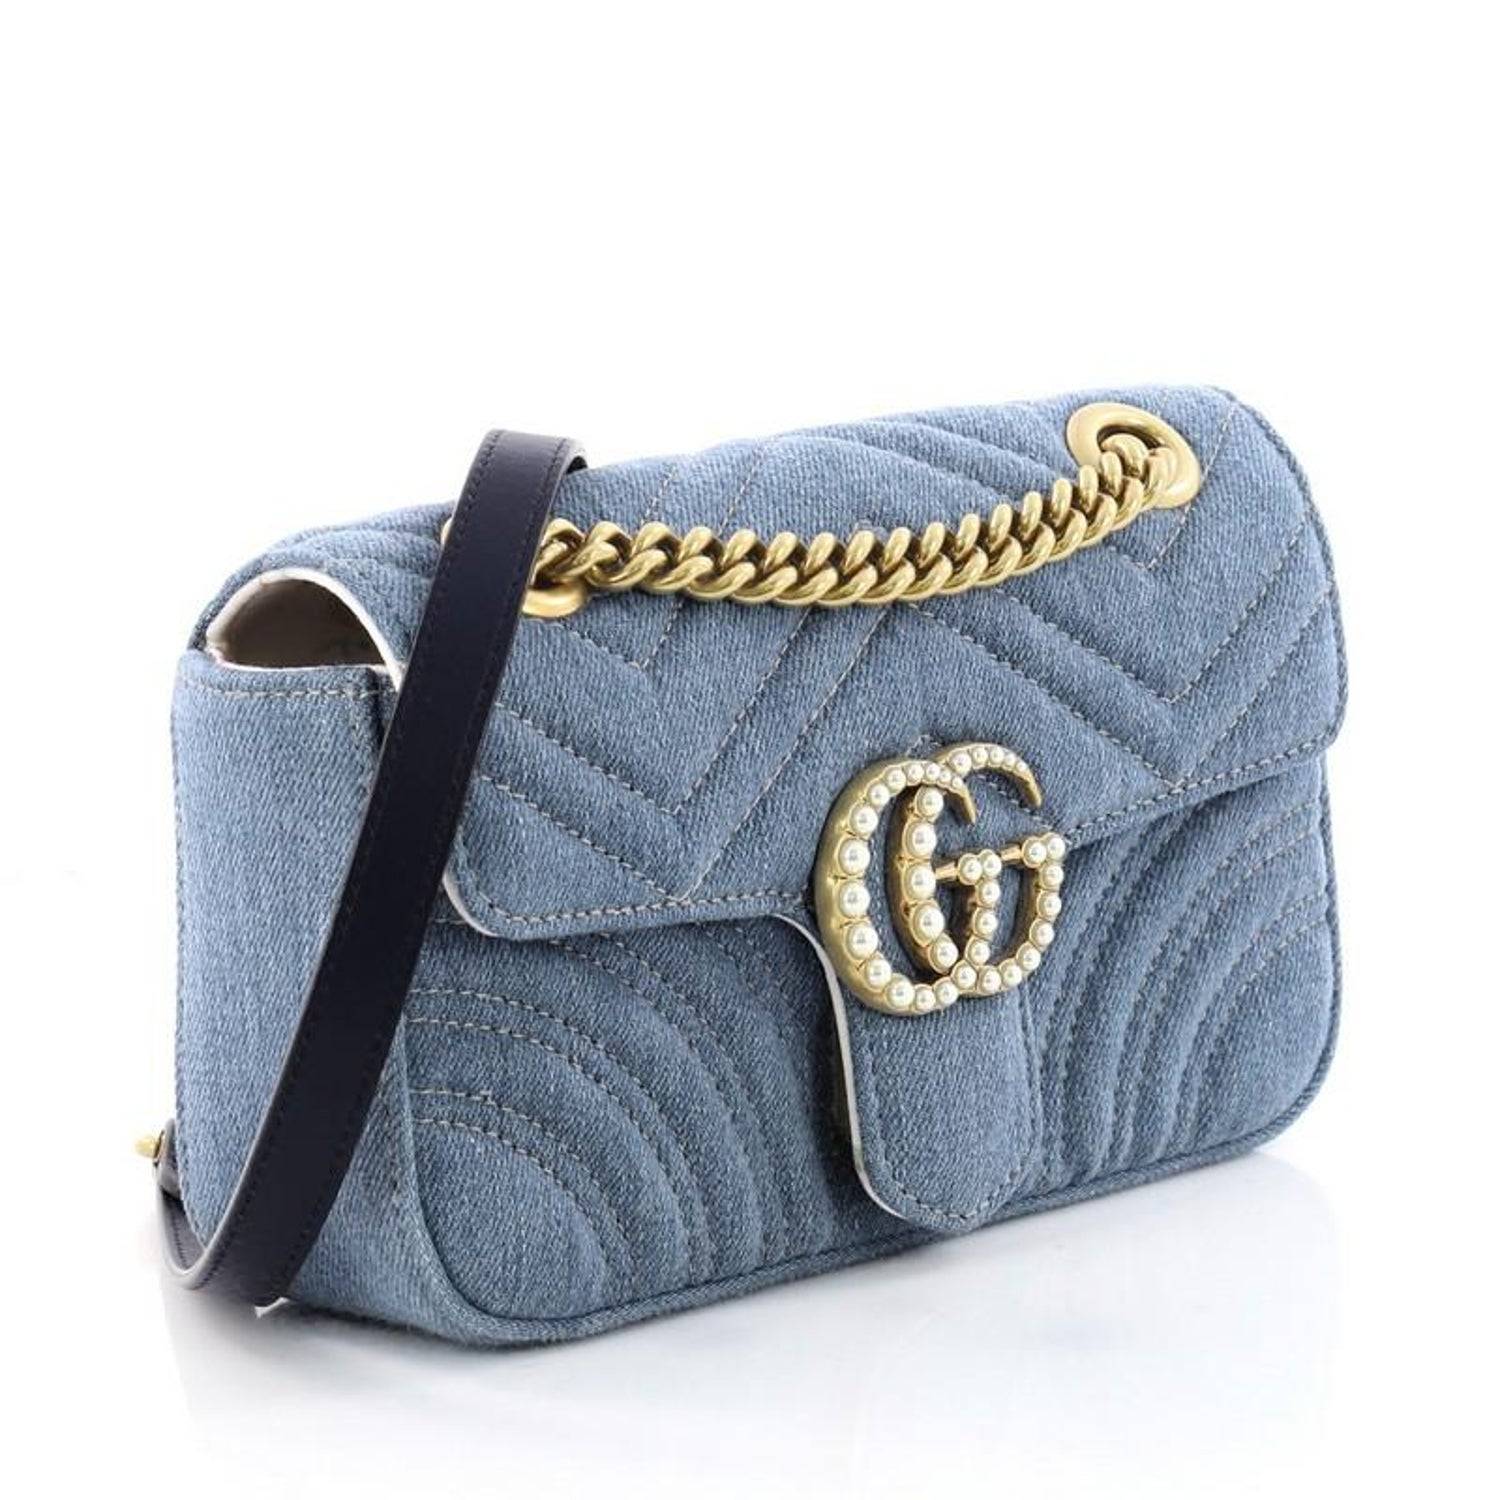 a1318428af4f68 Gucci Pearly GG Marmont Flap Bag Matelasse Denim Small at 1stdibs